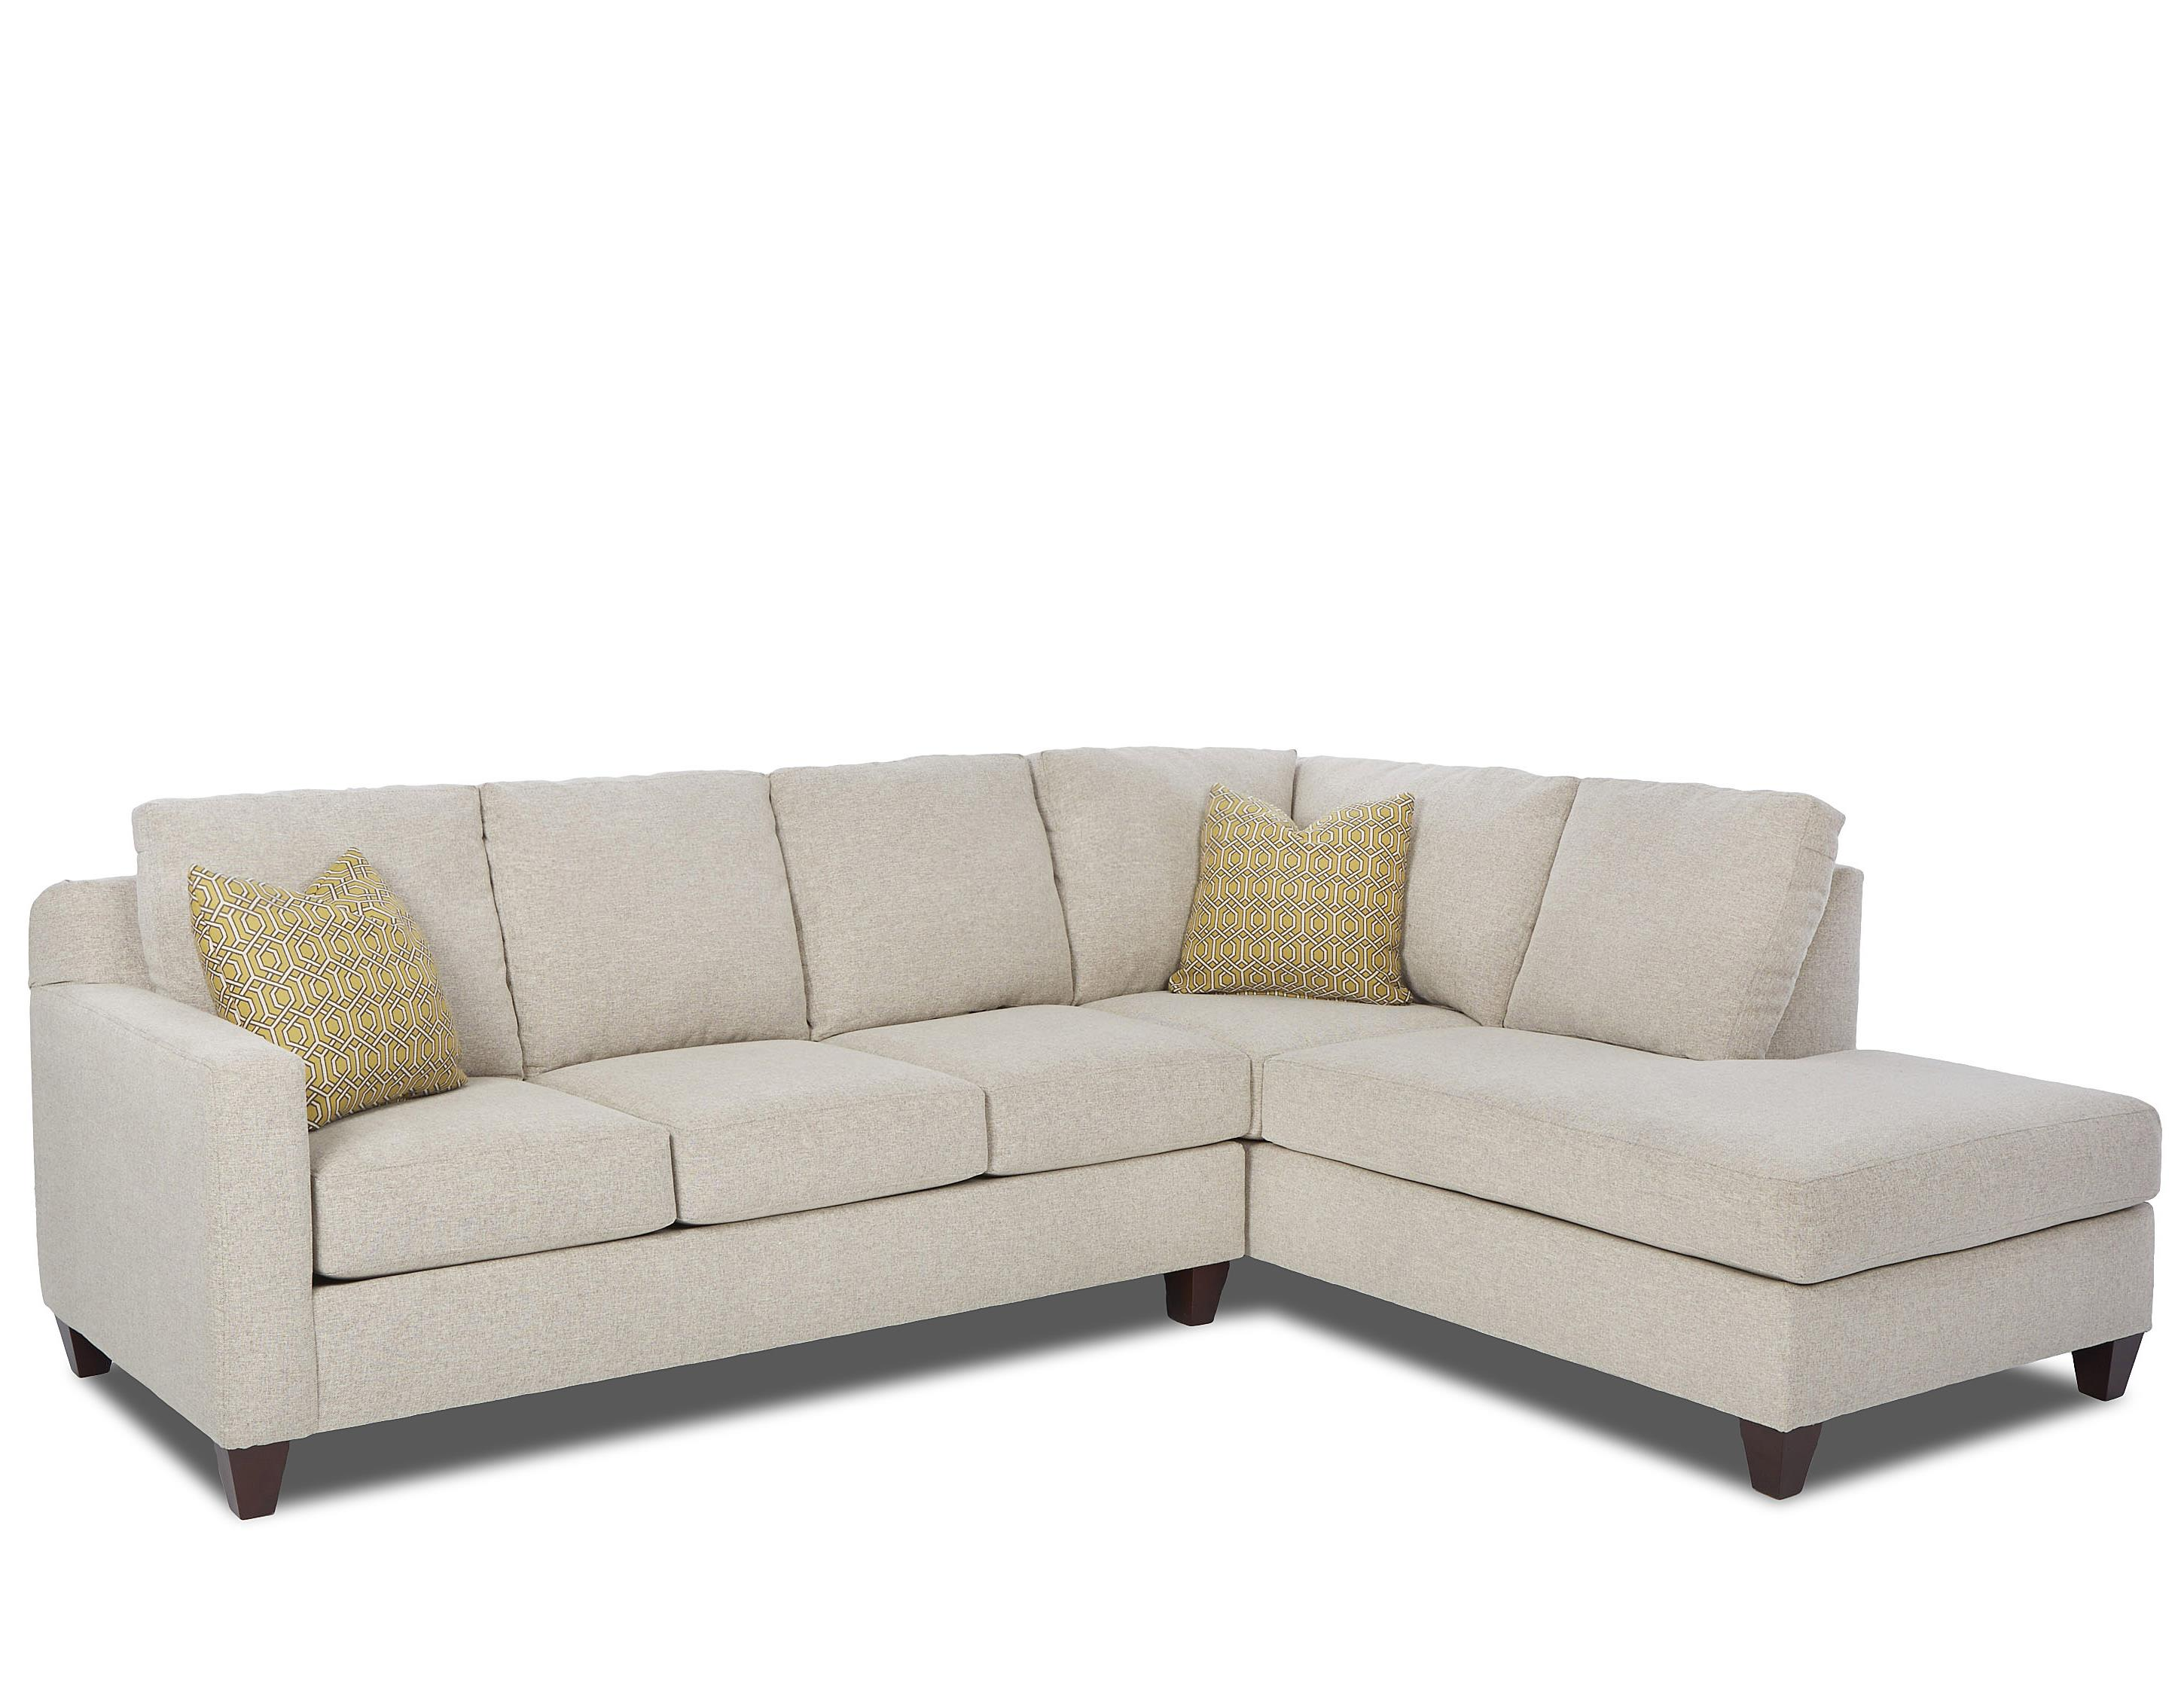 2 piece sectional sofa chaise how to clean wash klaussner bosco contemporary with right